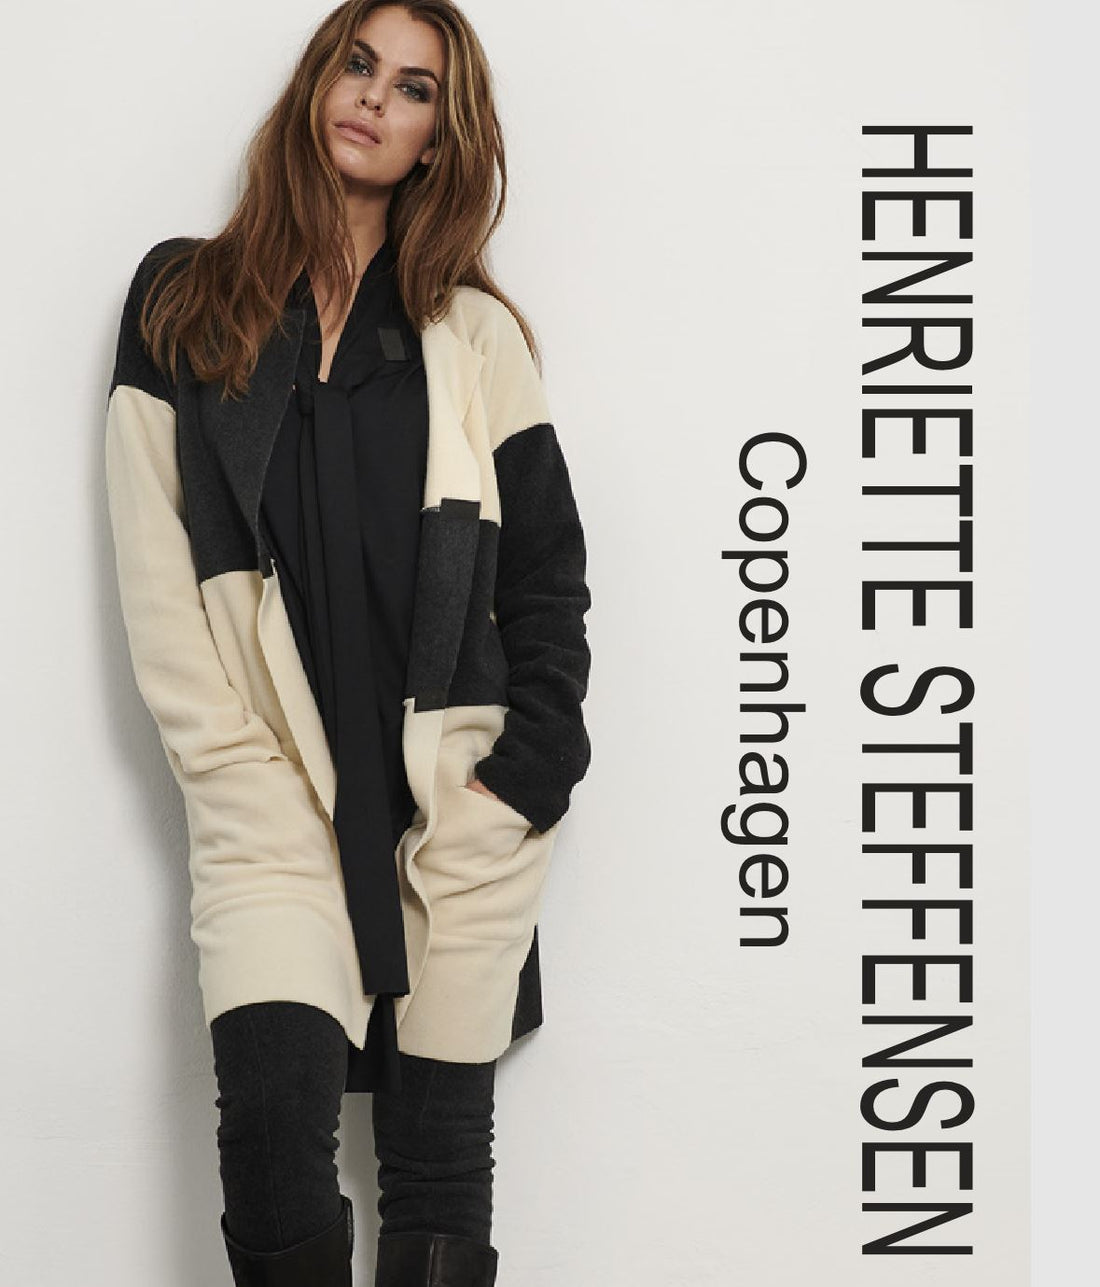 Henriette Steffensen Copenhagen |  True Fleece Sweaters, Cardigans, Jackets, Ponchos & Accessories